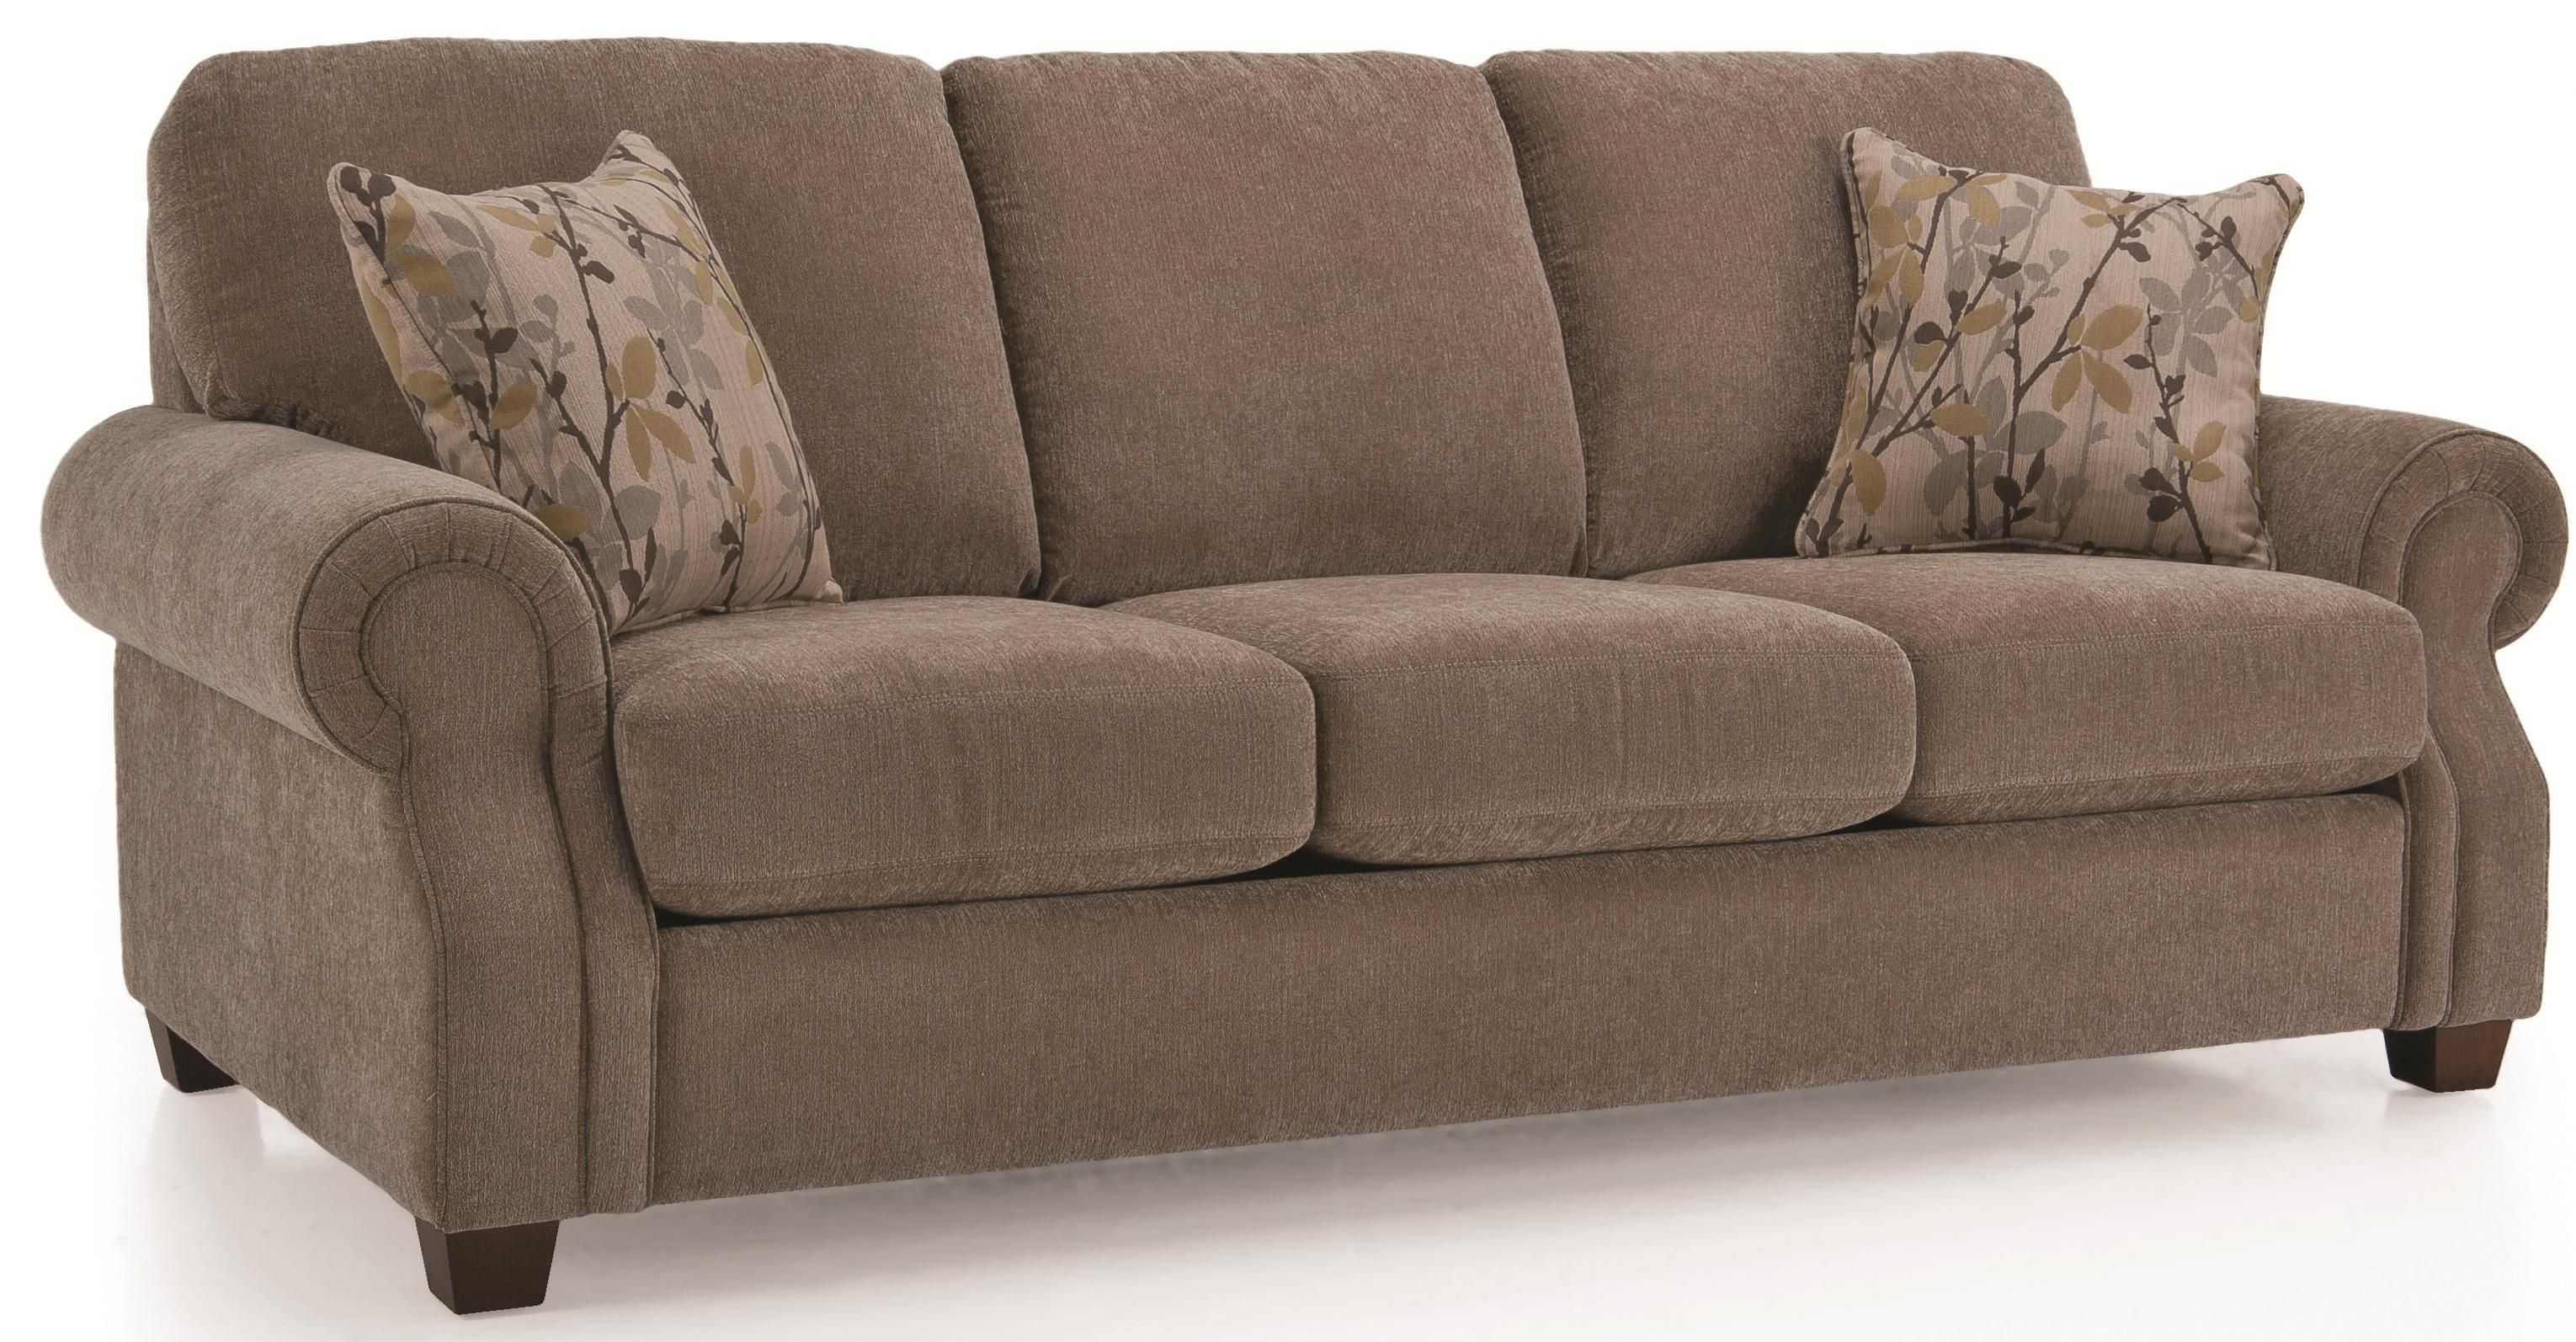 sofa mart indianapolis pet cover for waterproof 2279 by decor rest products i love or want